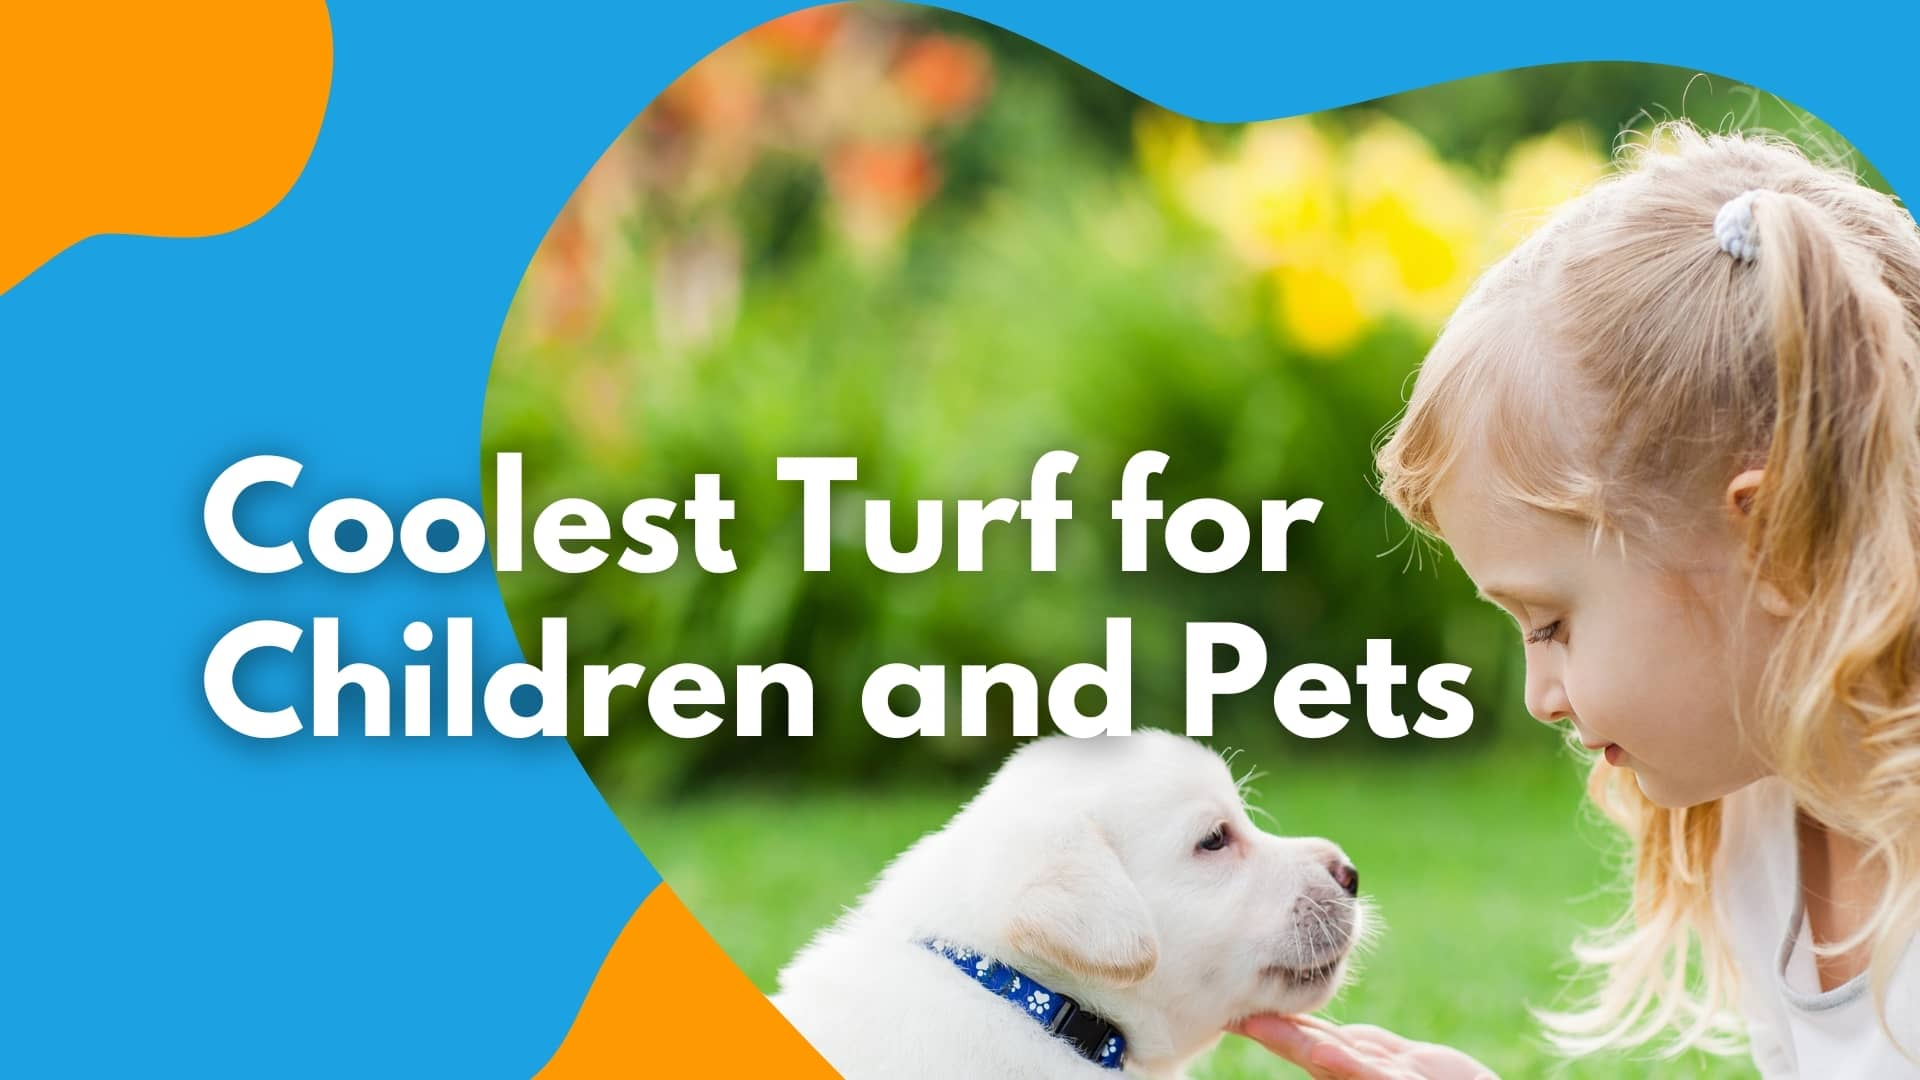 Coolest Turf For Children and Pets